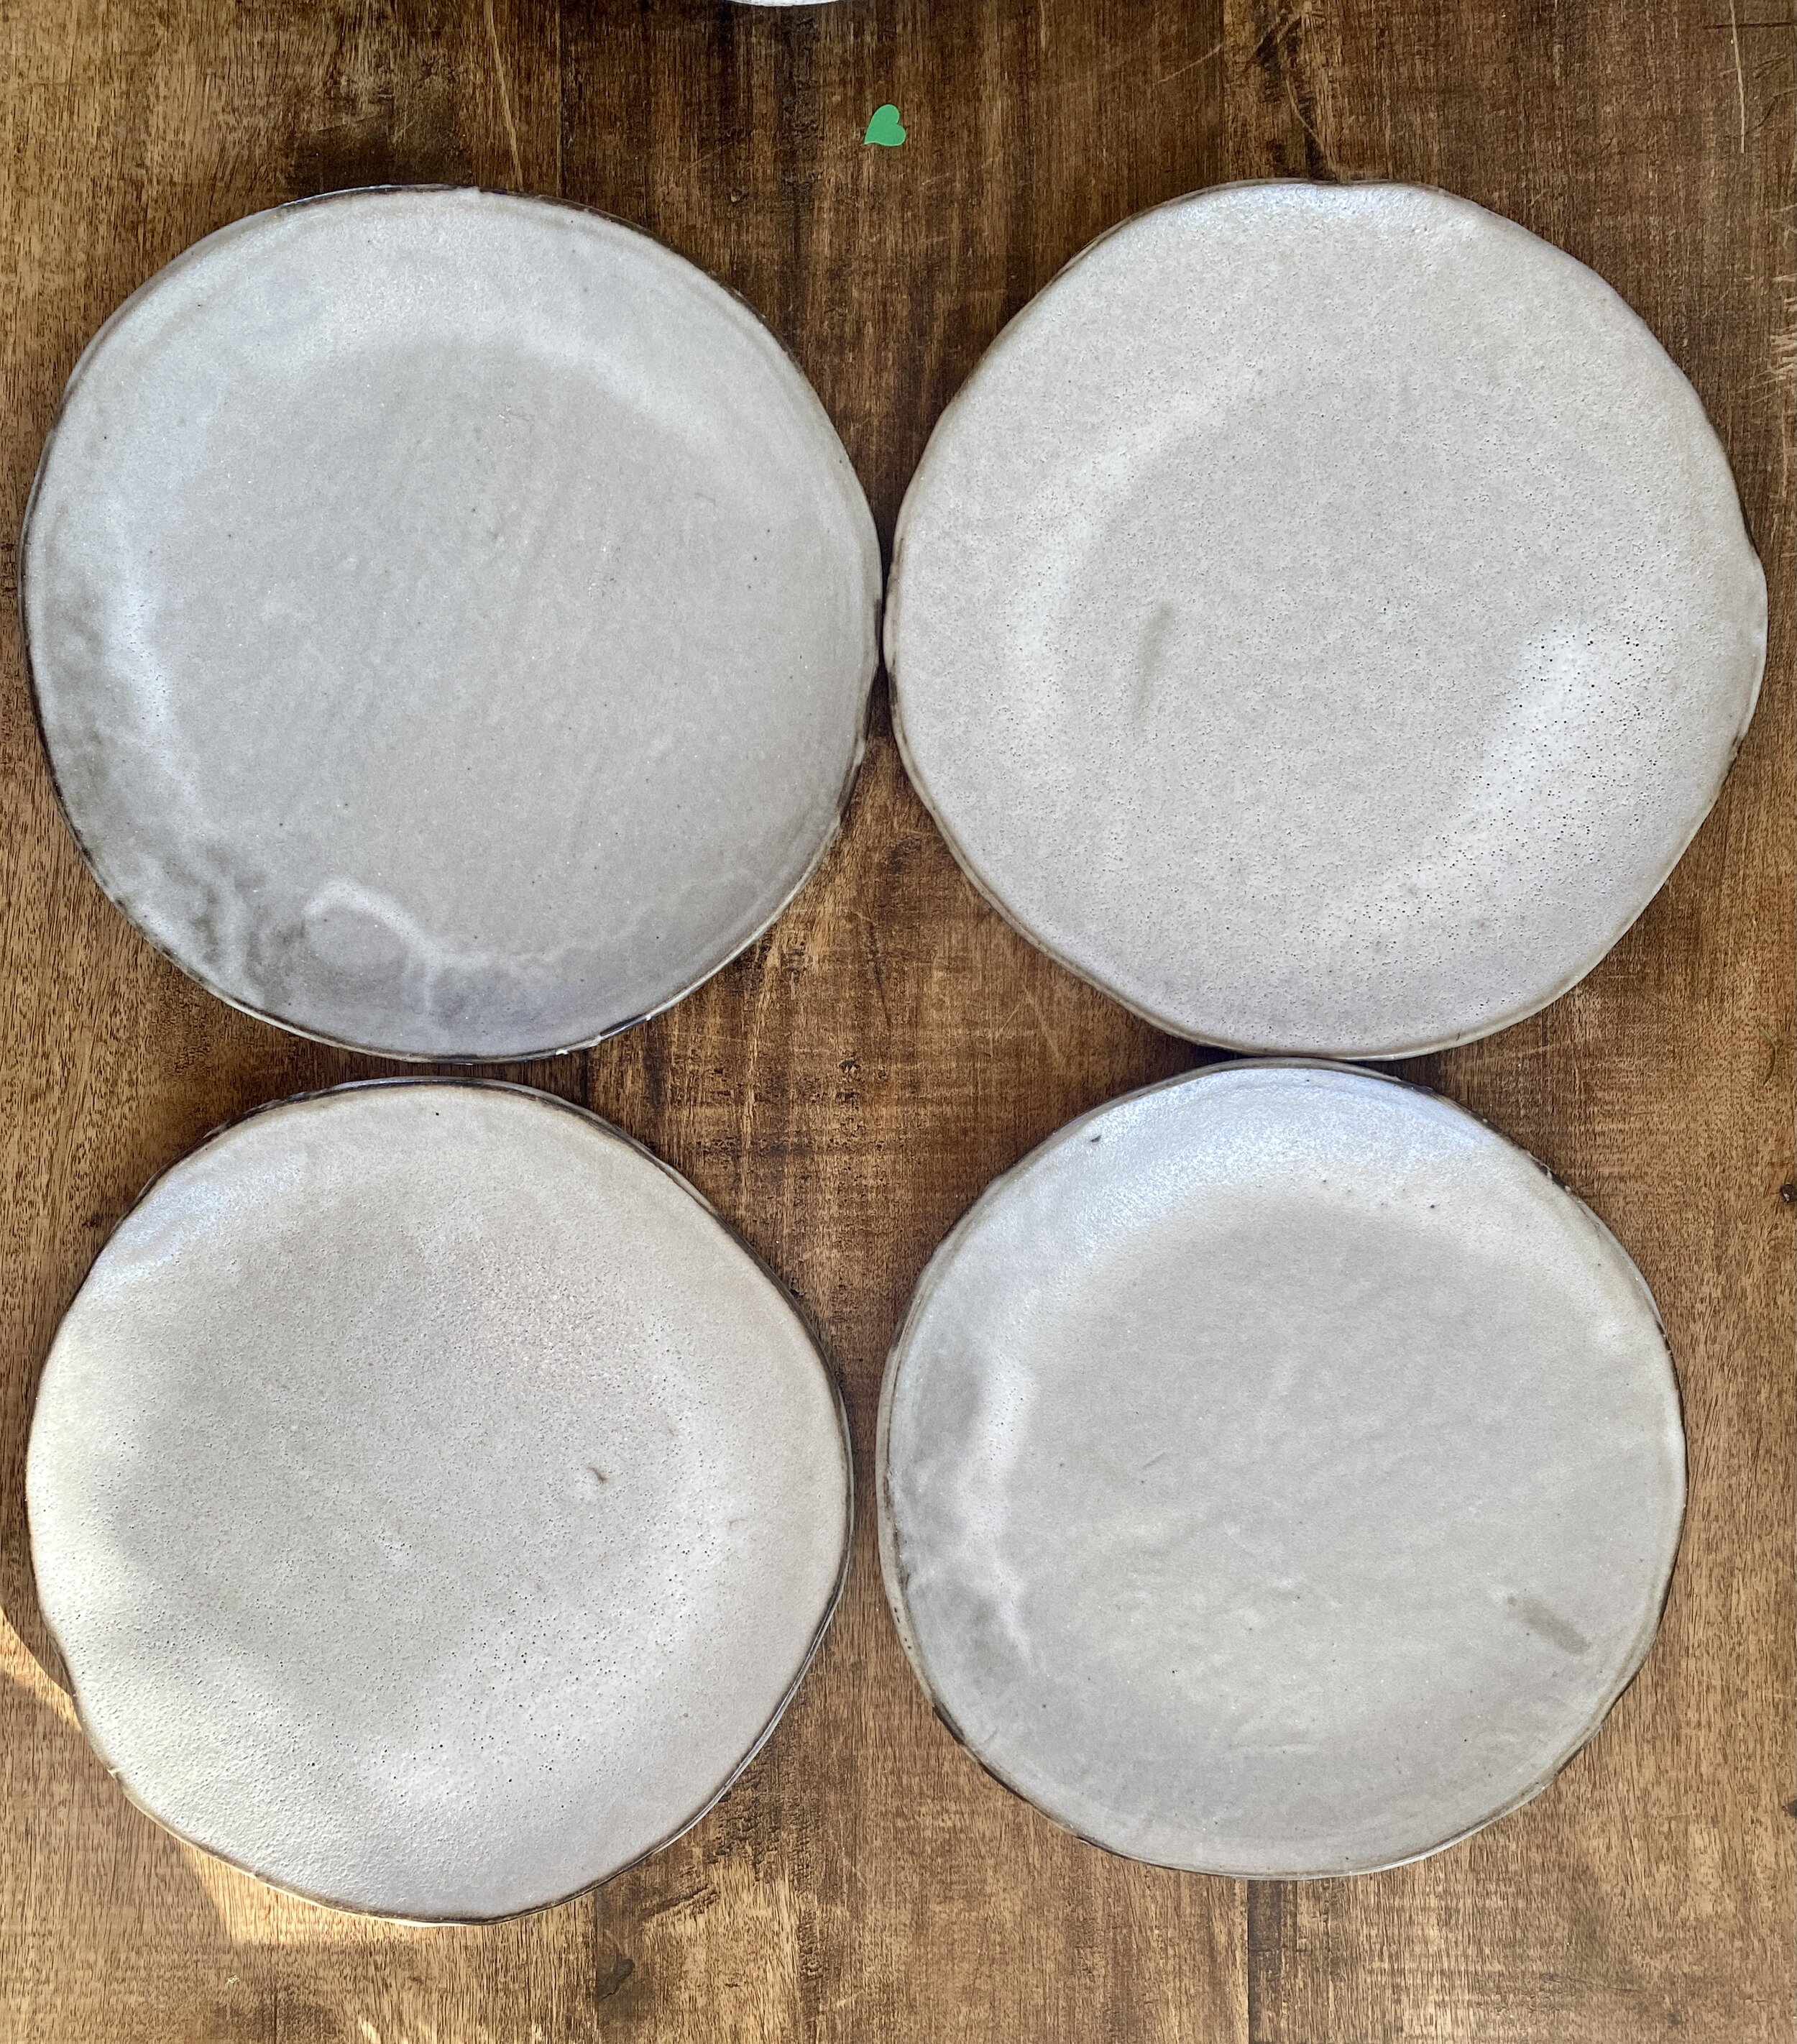 Modern And Chic Ceramic Dinner Plates Set Of 4 Glossy Dirty White Glaze On A Black Clay Body Cool And Clean And Inspired By Nature Blue Door Ceramics